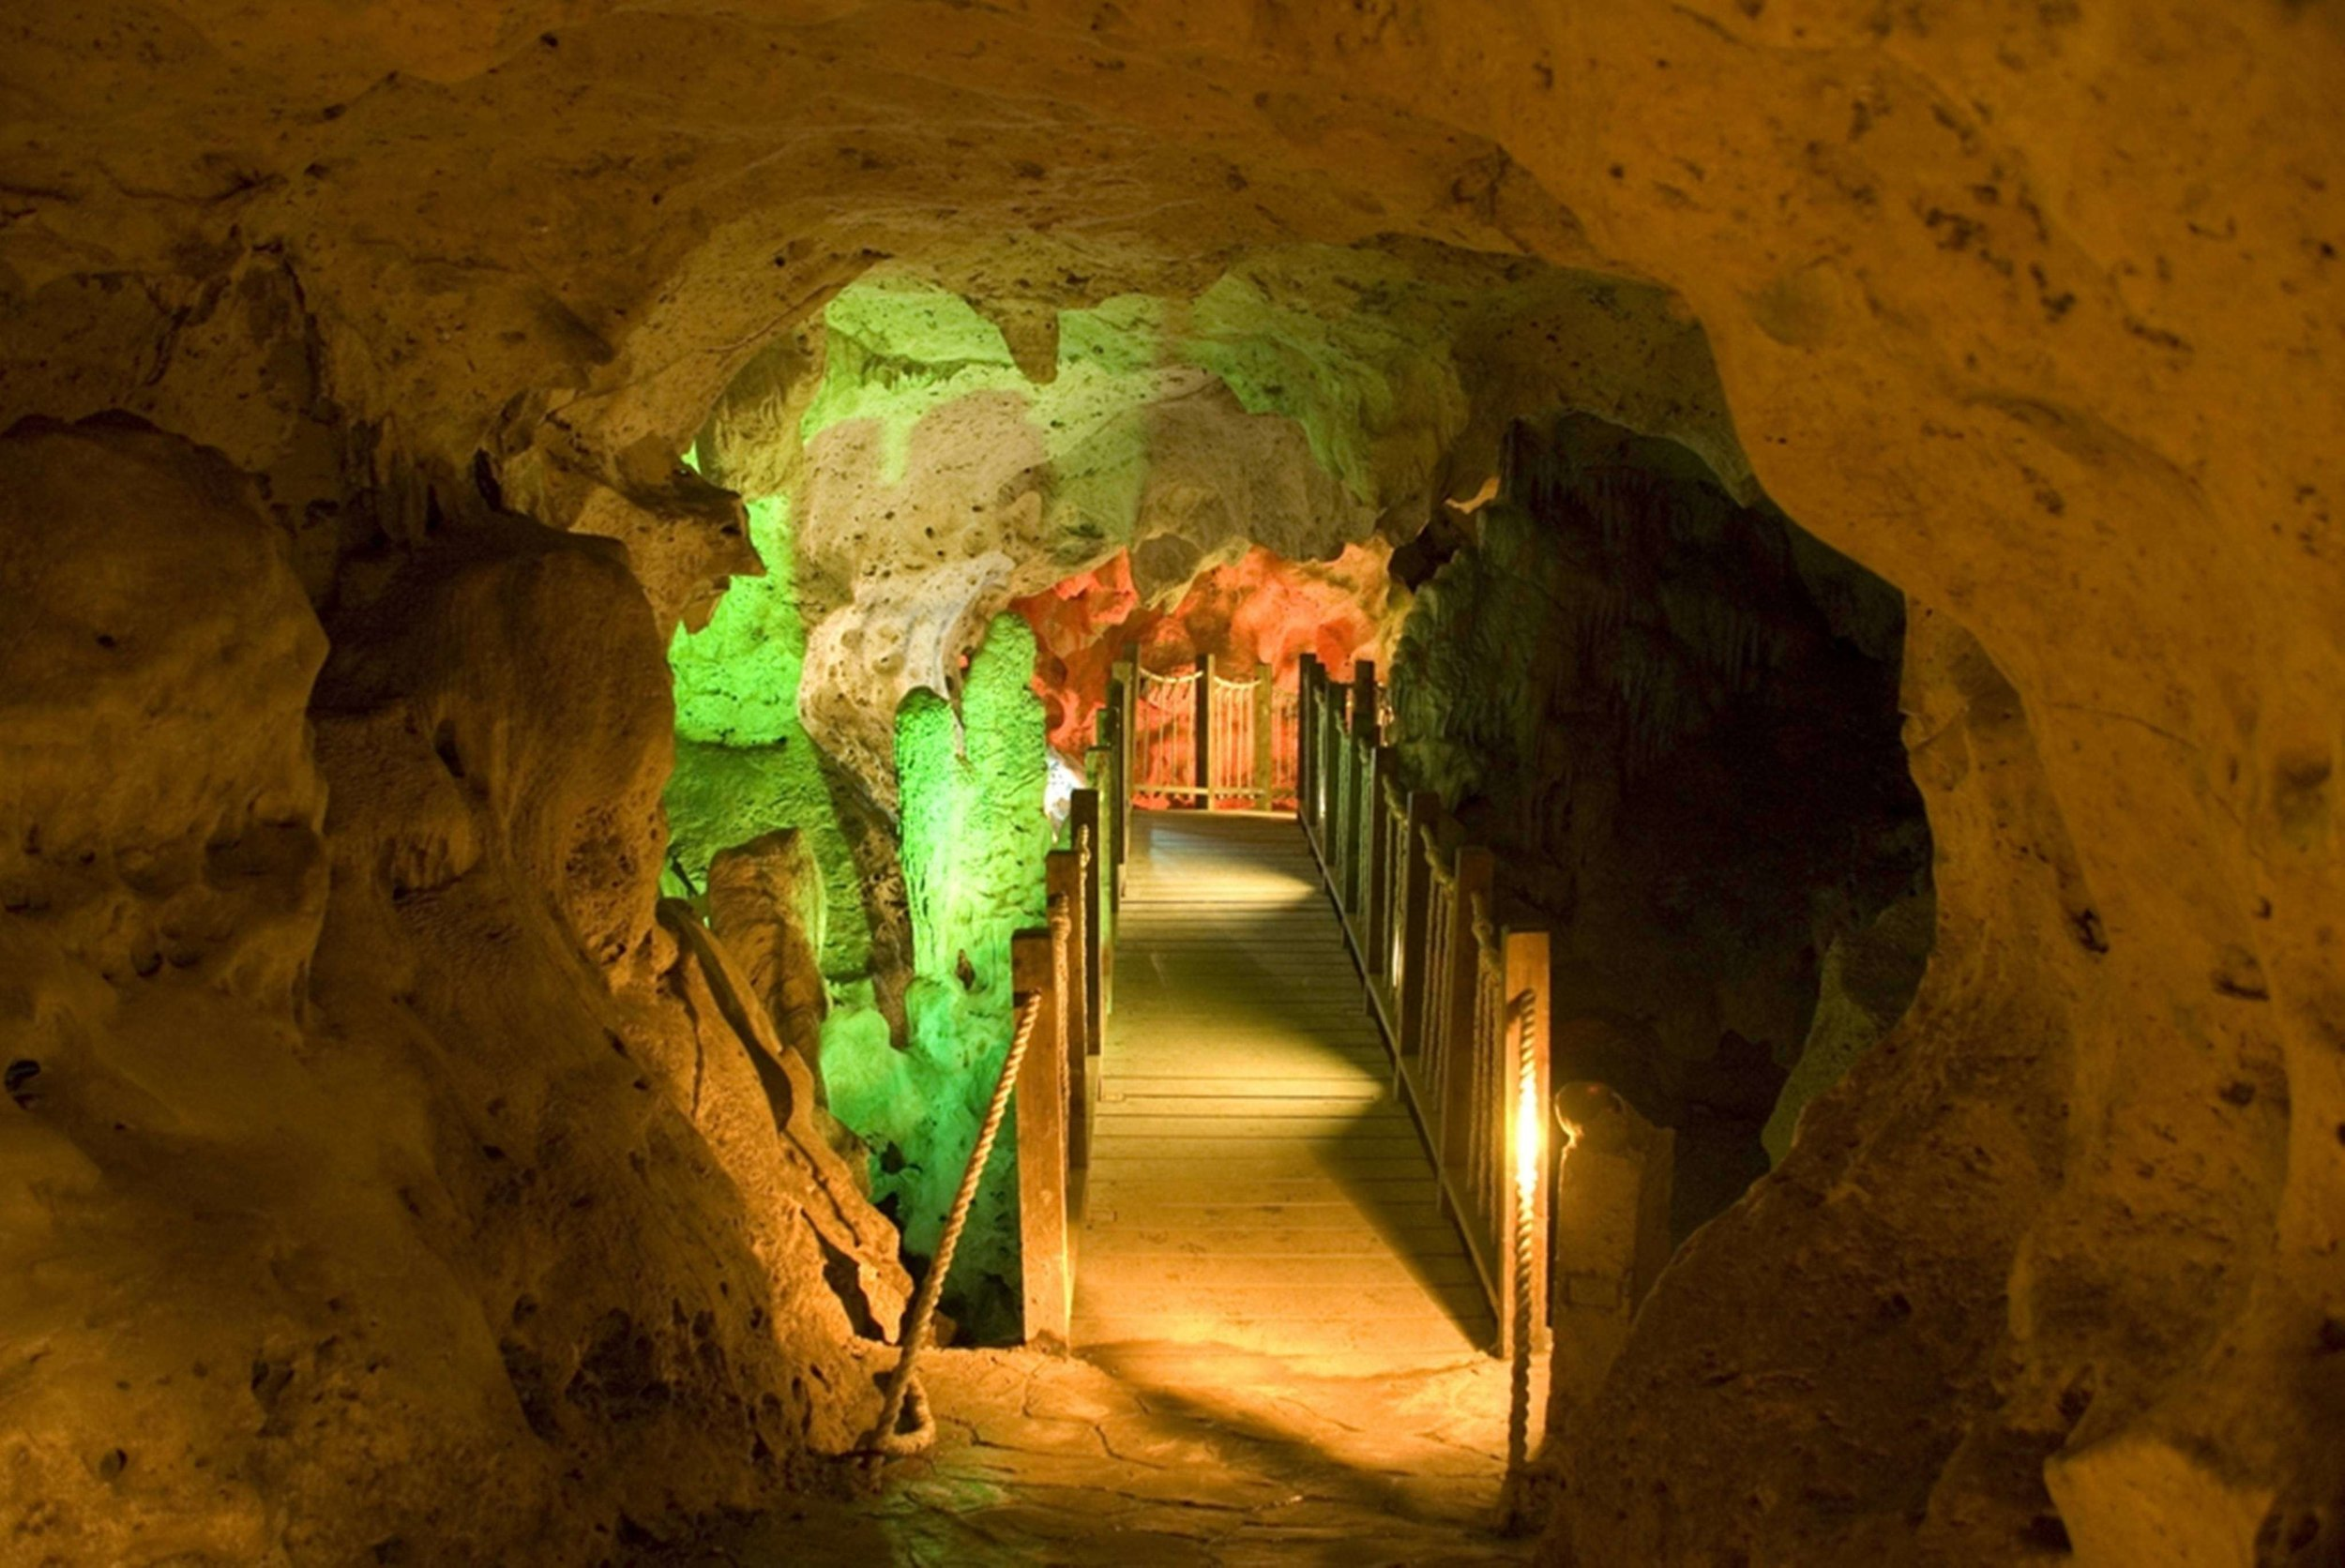 One of the best things to do in Ocho Rios is visit the green grotto caves